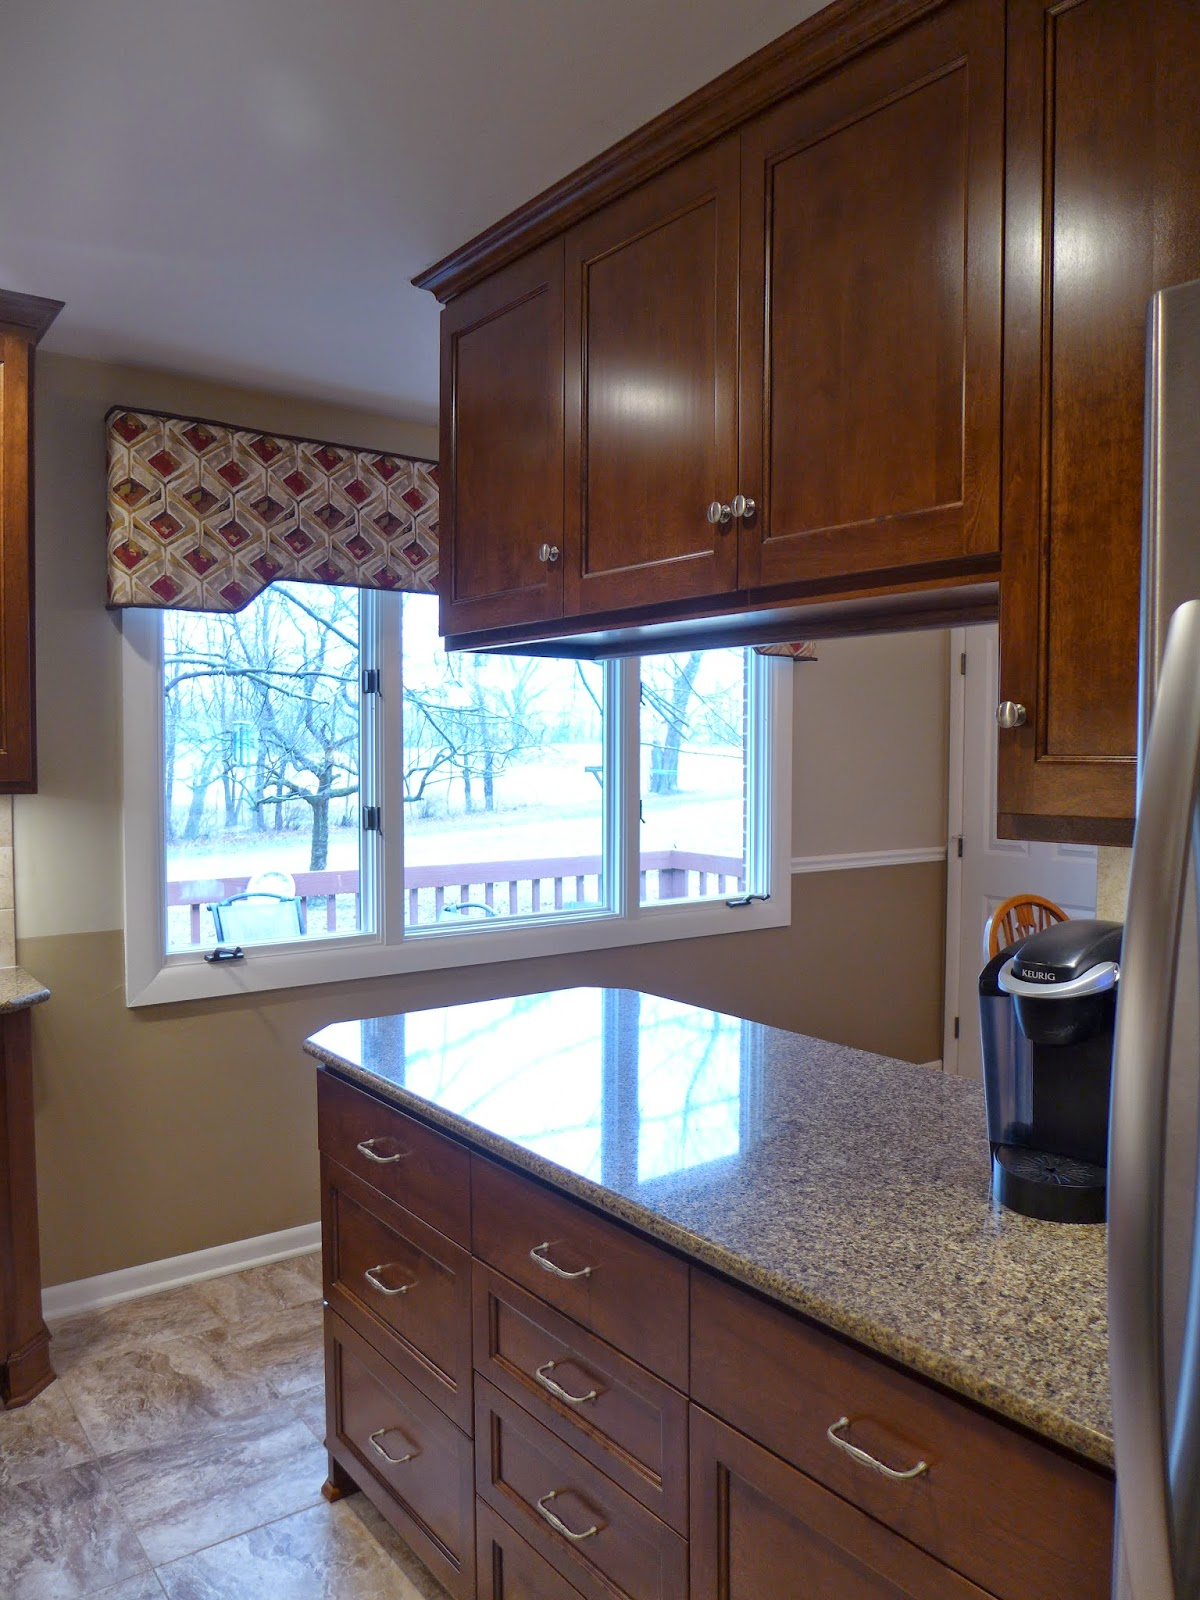 Styles Ideas Out There Get Kitchen Cabinet Hinge Types At